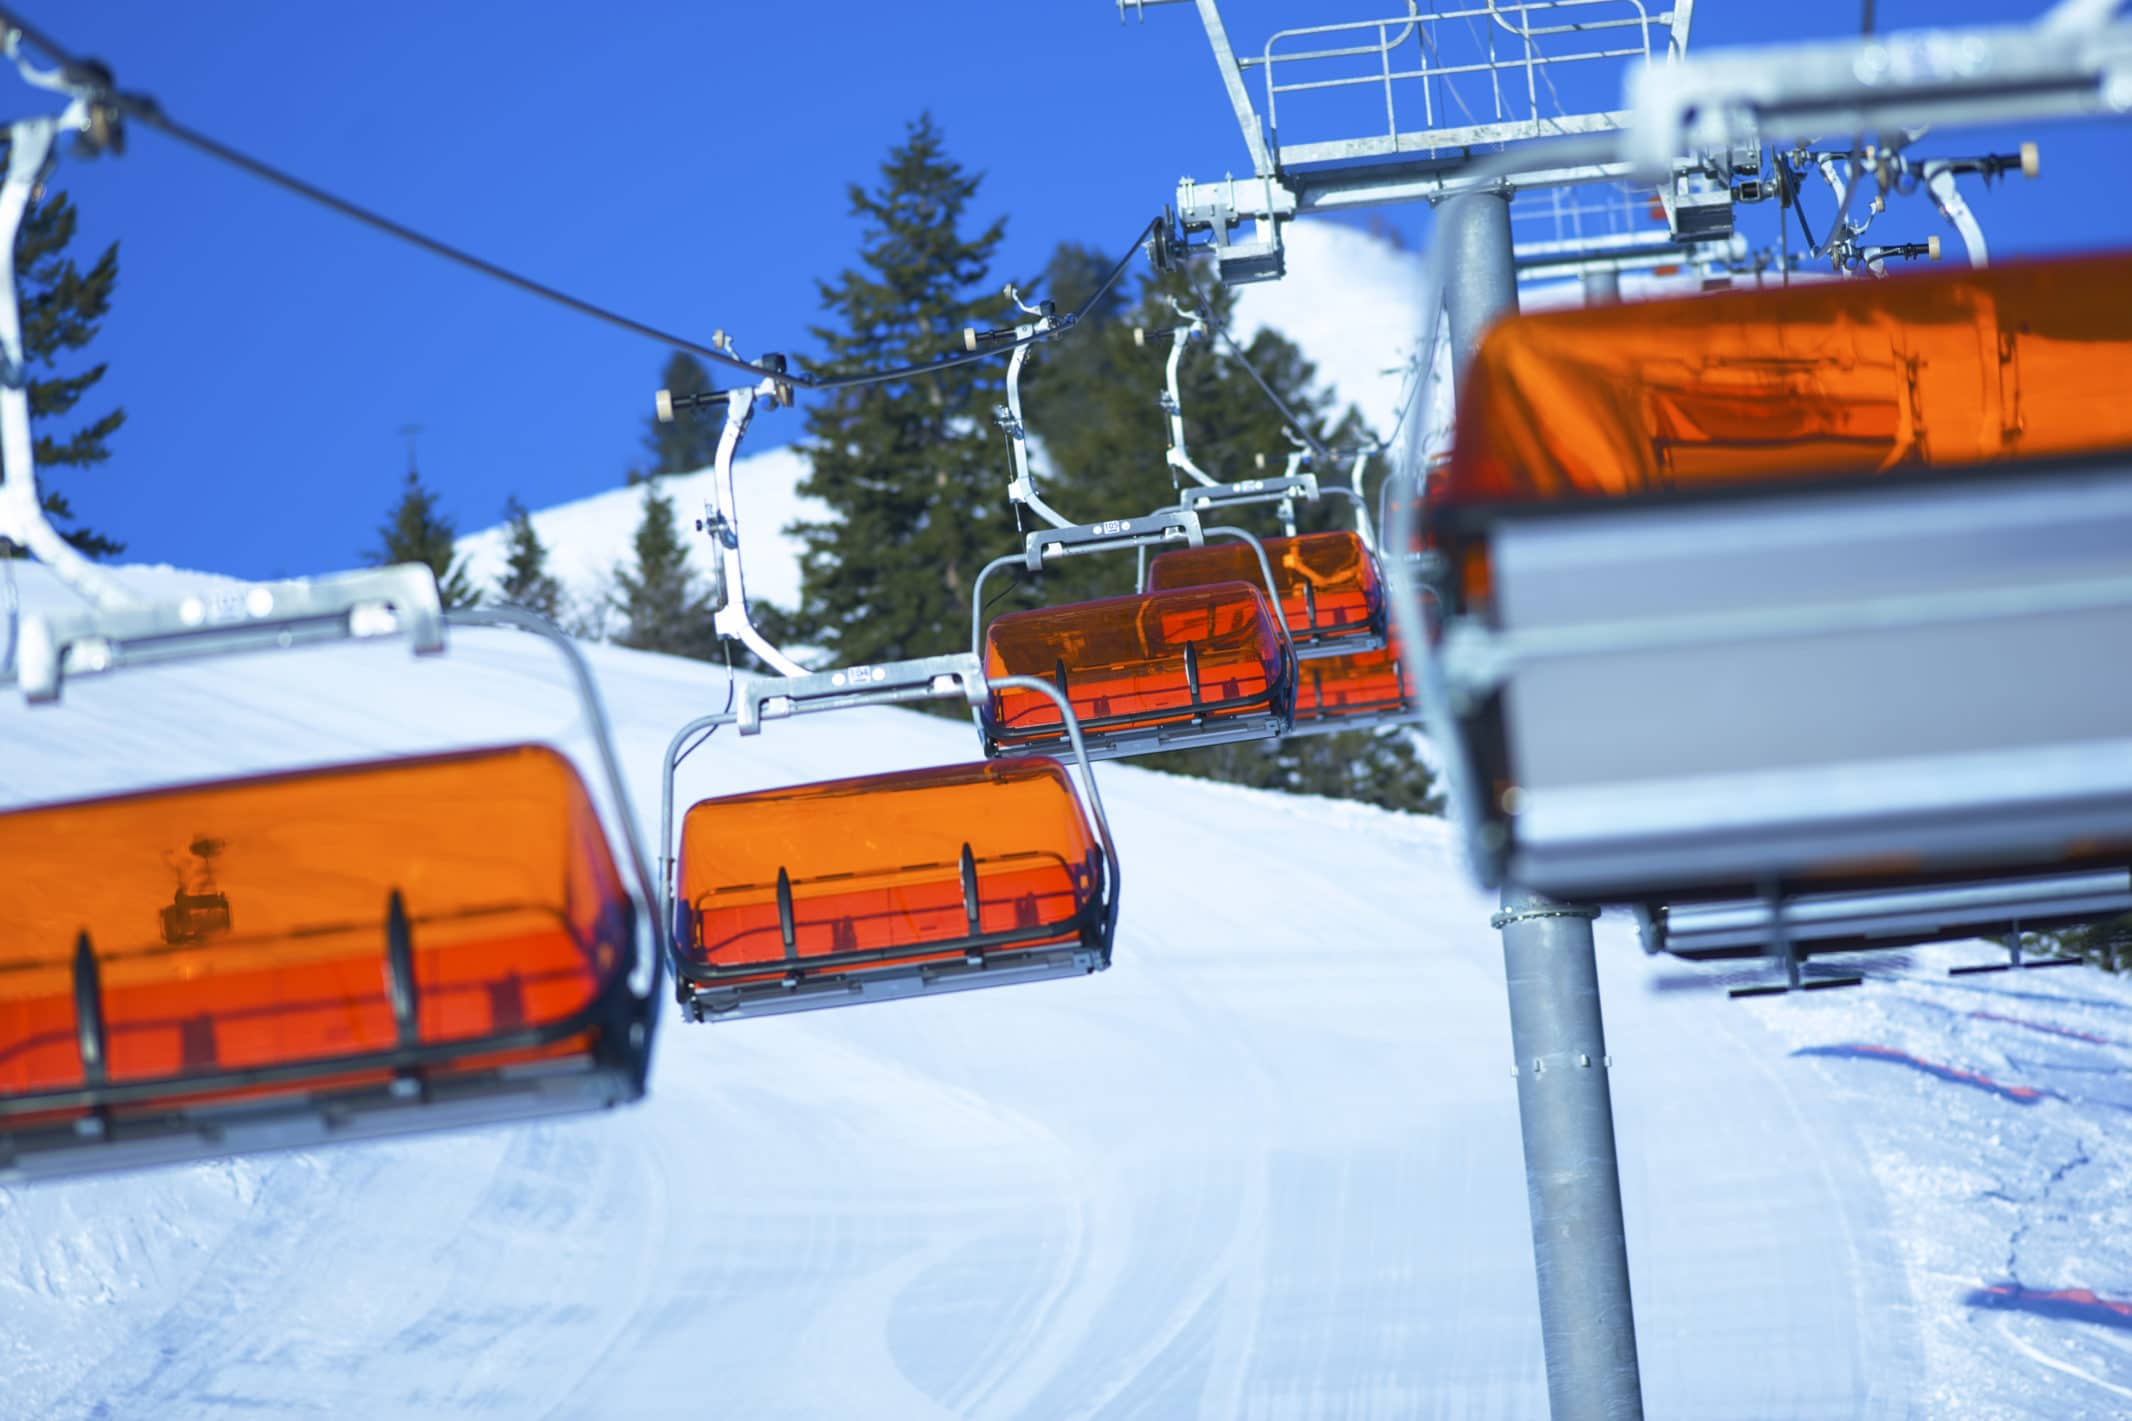 The Orange Bubble Express heated chairlift keeps skiers cozy en route to the runs. Photo: Rob Bossi, Canyons Resort.